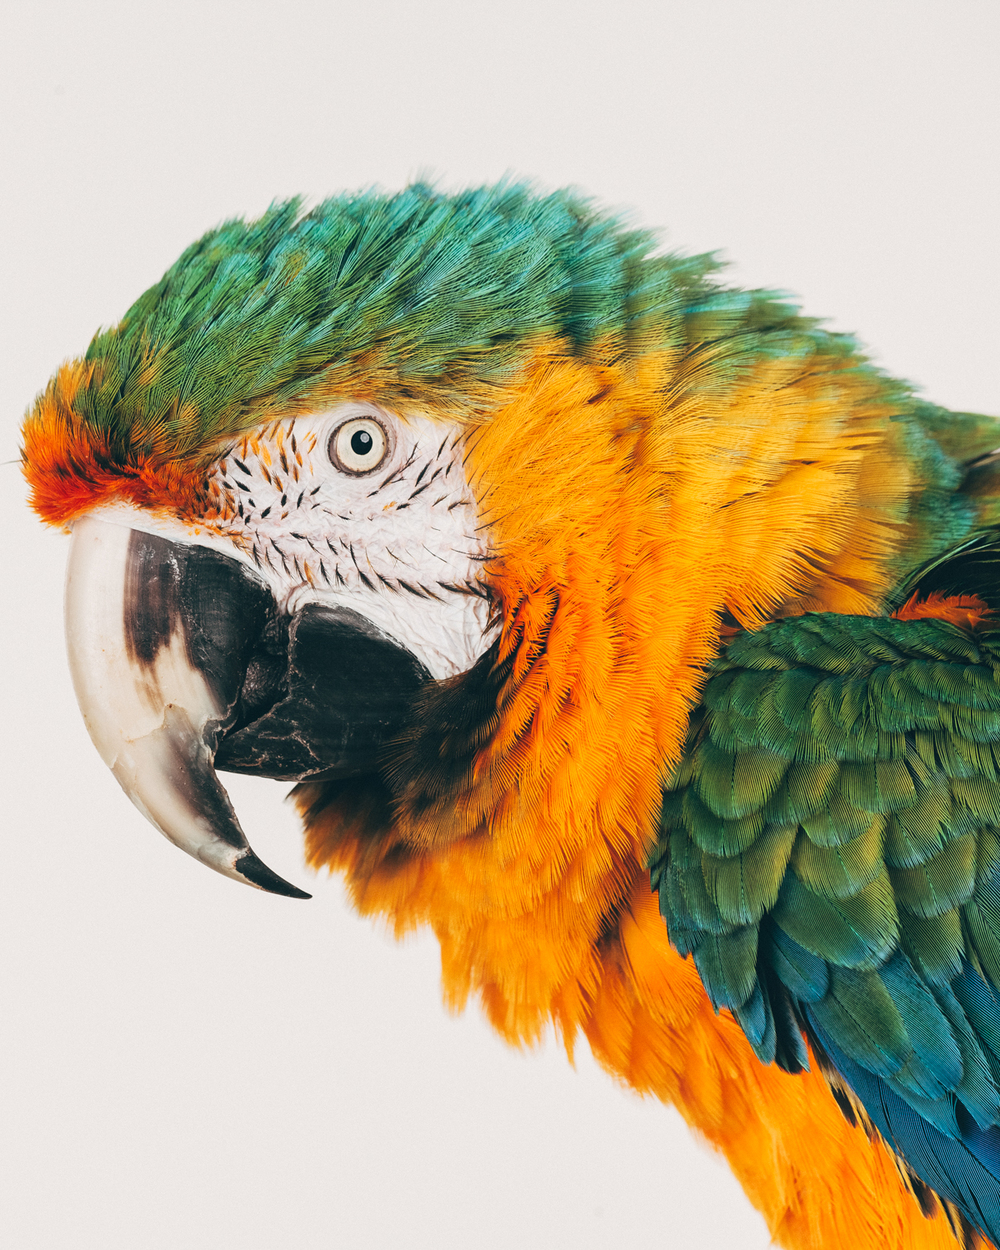 SUNRISE    Female.  Catalina macaw                                                           ( hybrid )  Age: unknown  Sunrise is a retired breeder that was not able to have successful hatchlings.  All of her babies had major handicaps and would die soon after hatching or within the first year.  She was being sent to two different sanctuaries. We  are unsure of her age as she has not documentation.  She does have splayed legs but is able to get around just fine!